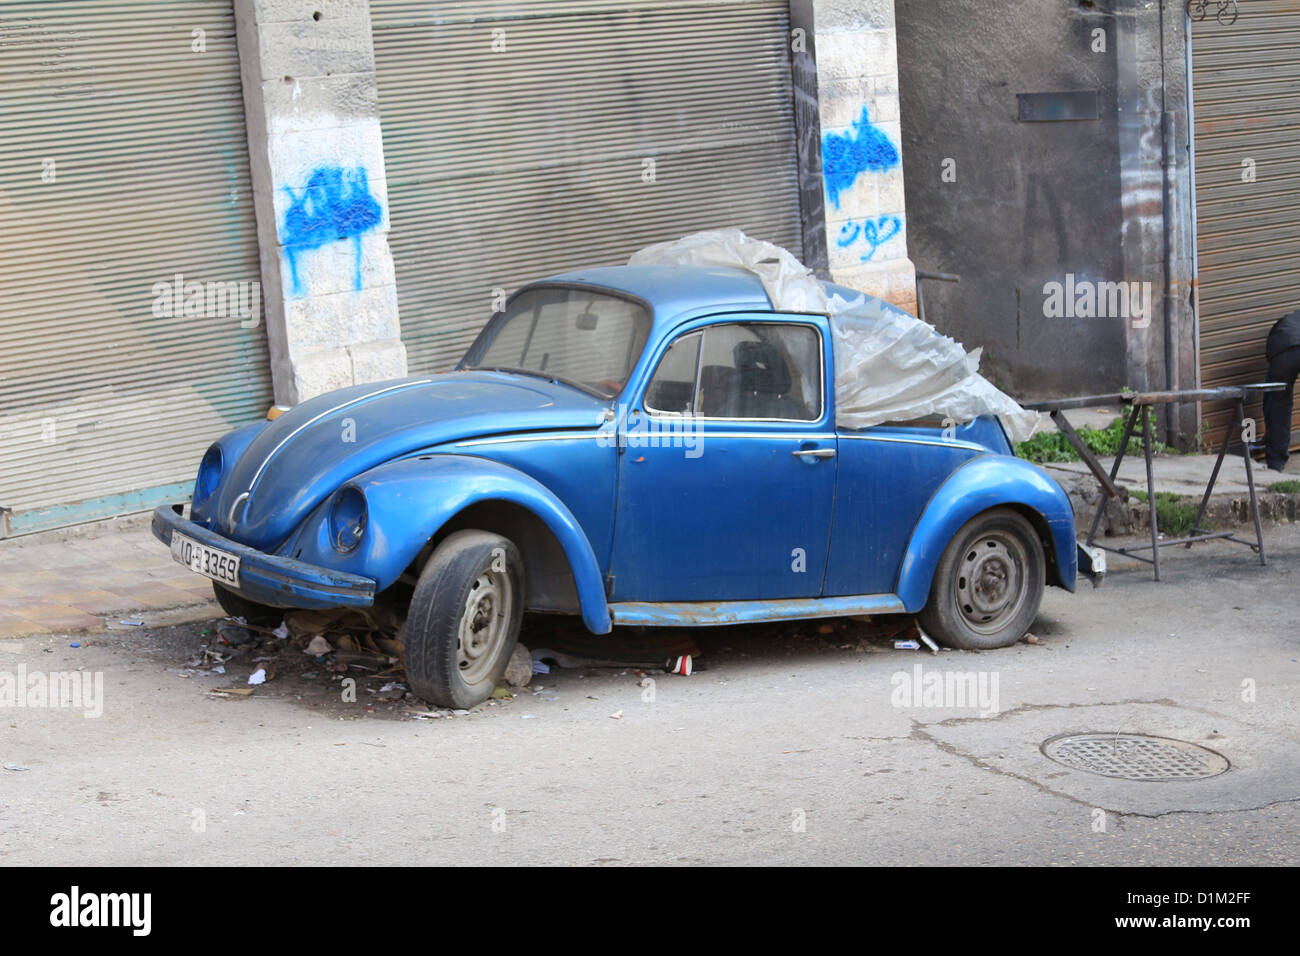 A Volkswagen Beetle in need of some TLC seen on the streets of Amman, Jordan, Middle East - Stock Image